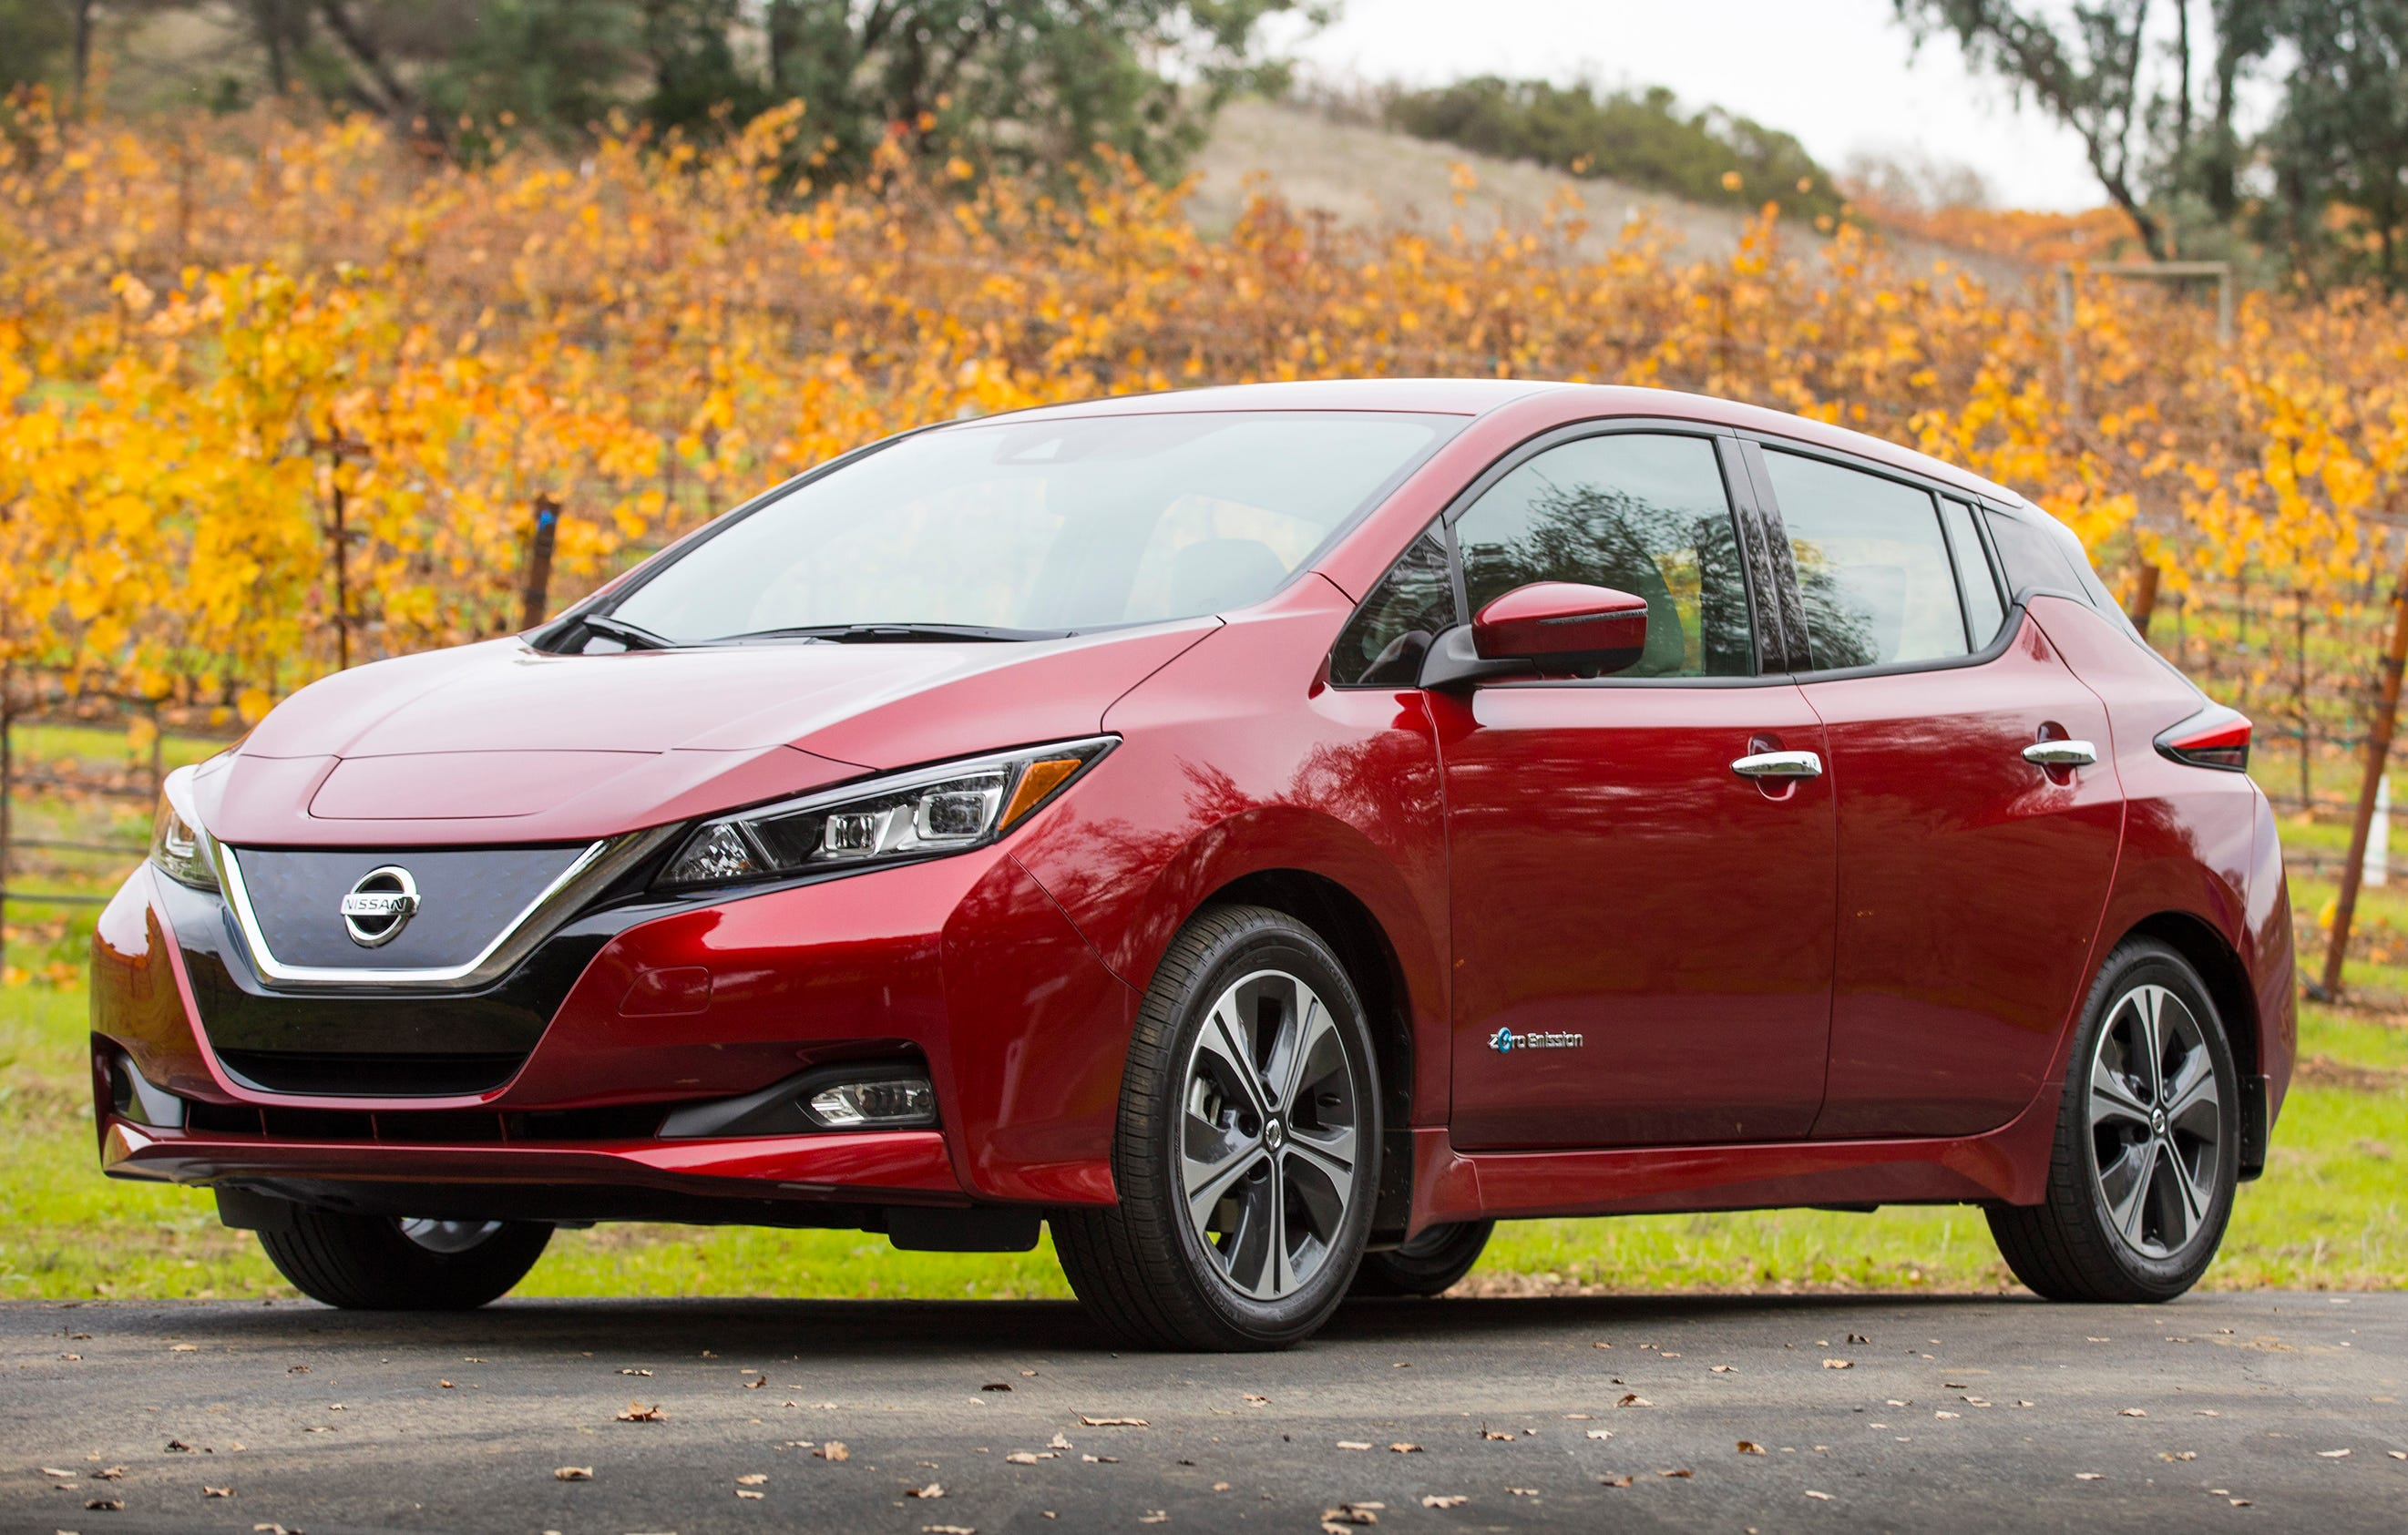 This undated photo provided by Nissan shows the 2018 Nissan Leaf. The Leaf has been on the market since 2011 and has received a full redesign for 2018. The Leaf gets 151 miles of range. (Nissan North America via AP)